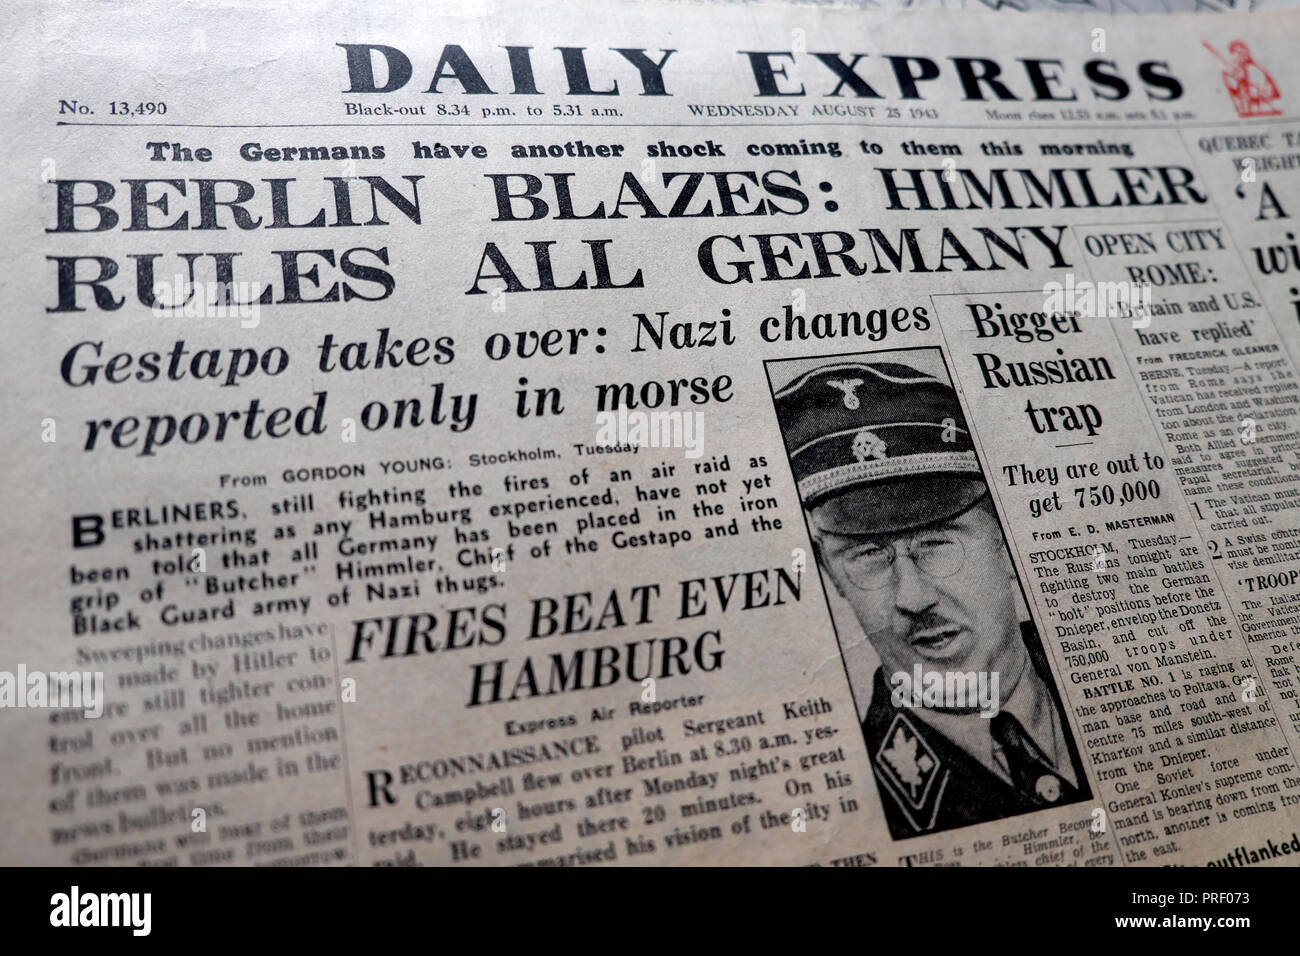 Front page headlines of the Daily Express newspaper 'Berlin Blazes: Himmler Rules All Germany' London England UK  August 25 1943  historical archive - Stock Image